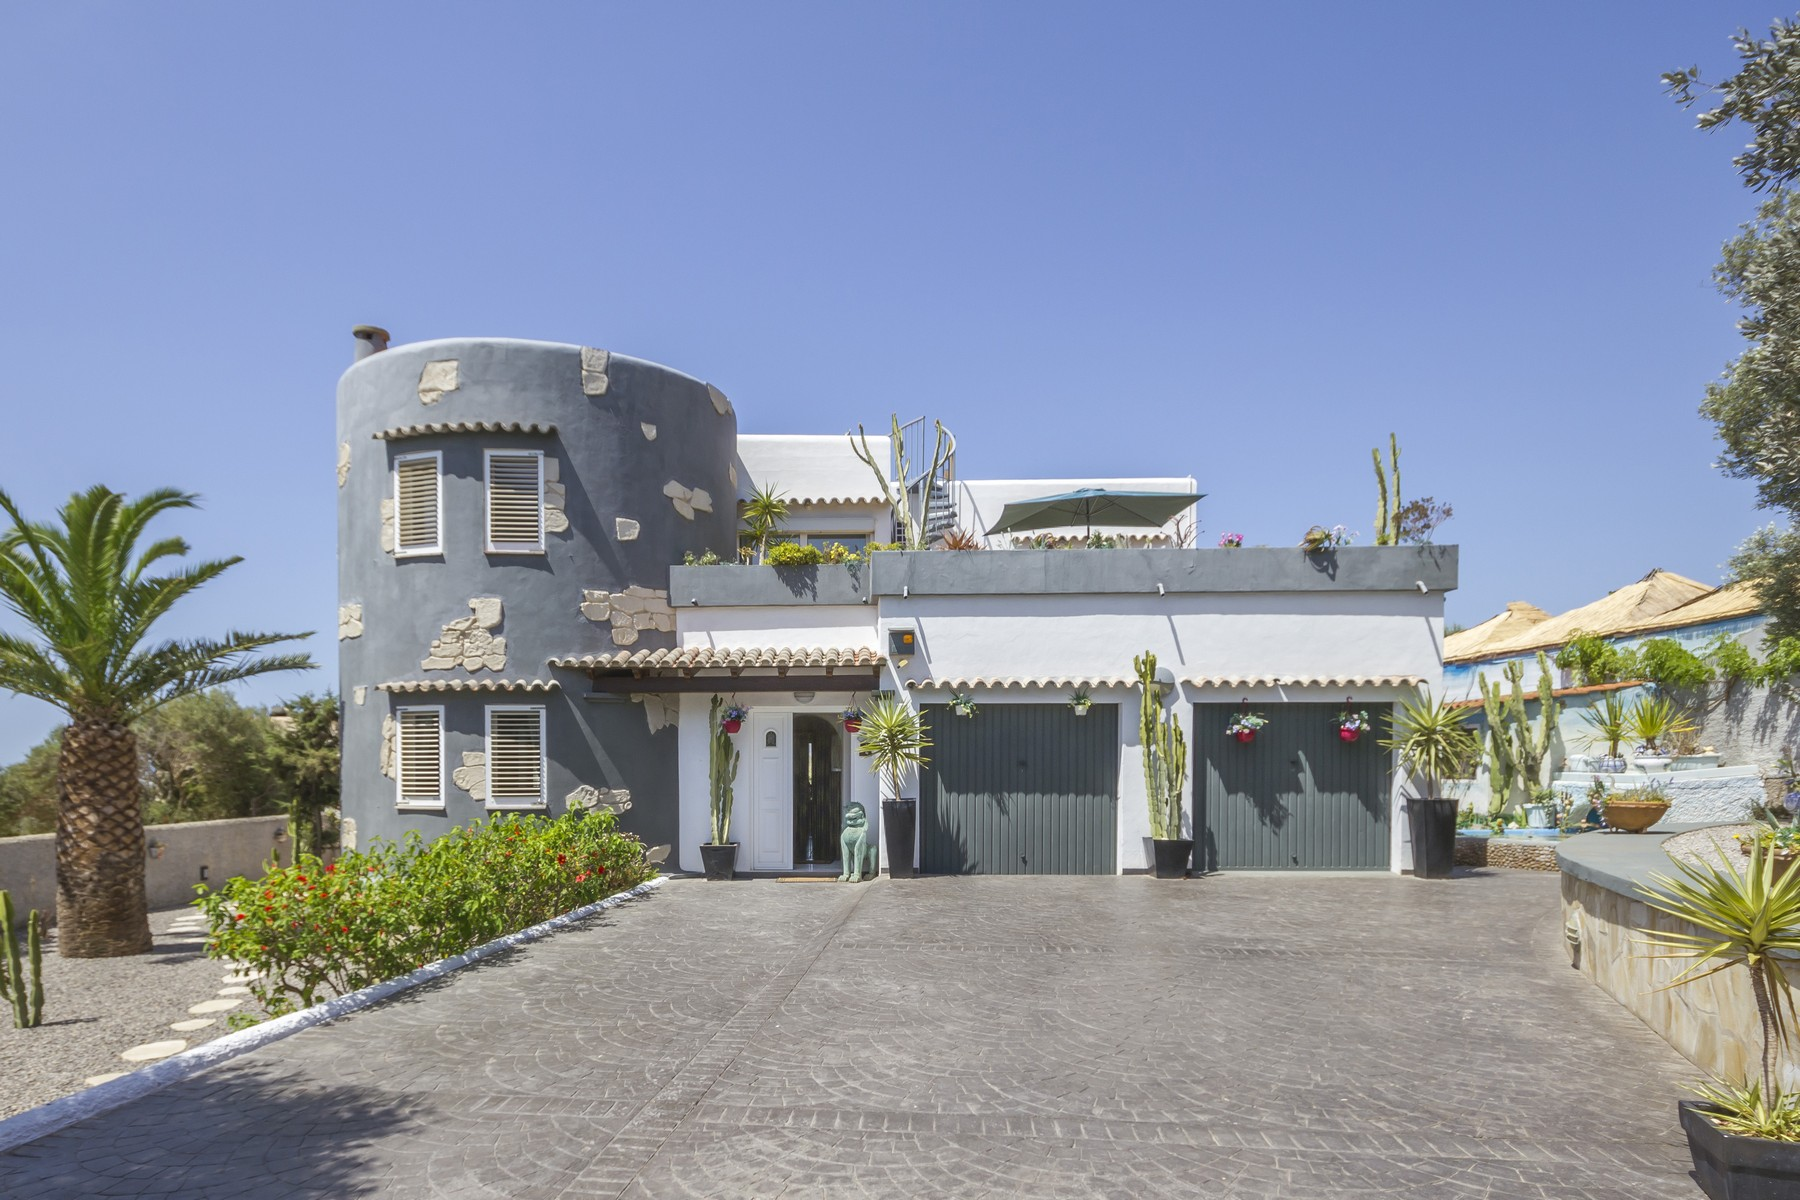 Casa Unifamiliar por un Venta en Spacious Villa In Great Location Close To Ibiza San Jose, Ibiza, 07830 España